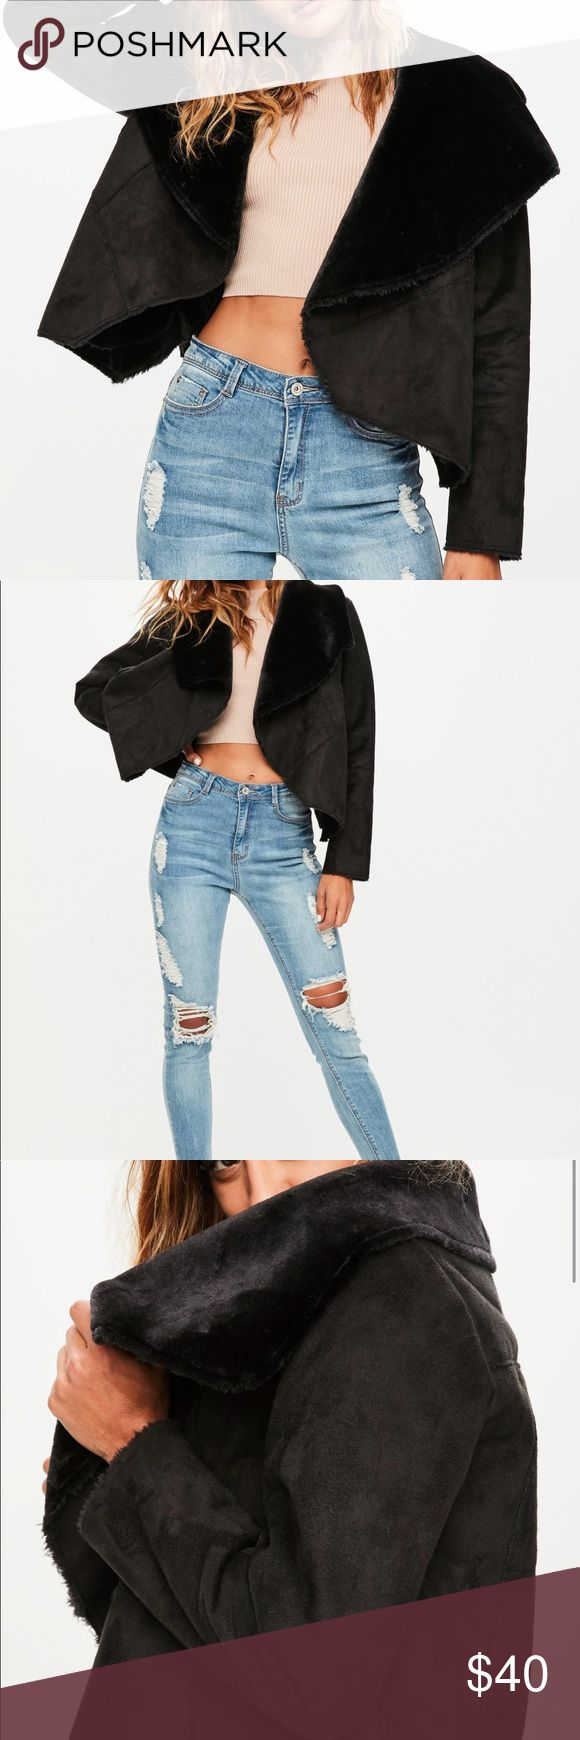 Nwt black shearling coat Nwt coat. Shearling, black waterfall. Size 4. Missguided Missguided Jackets & Coats